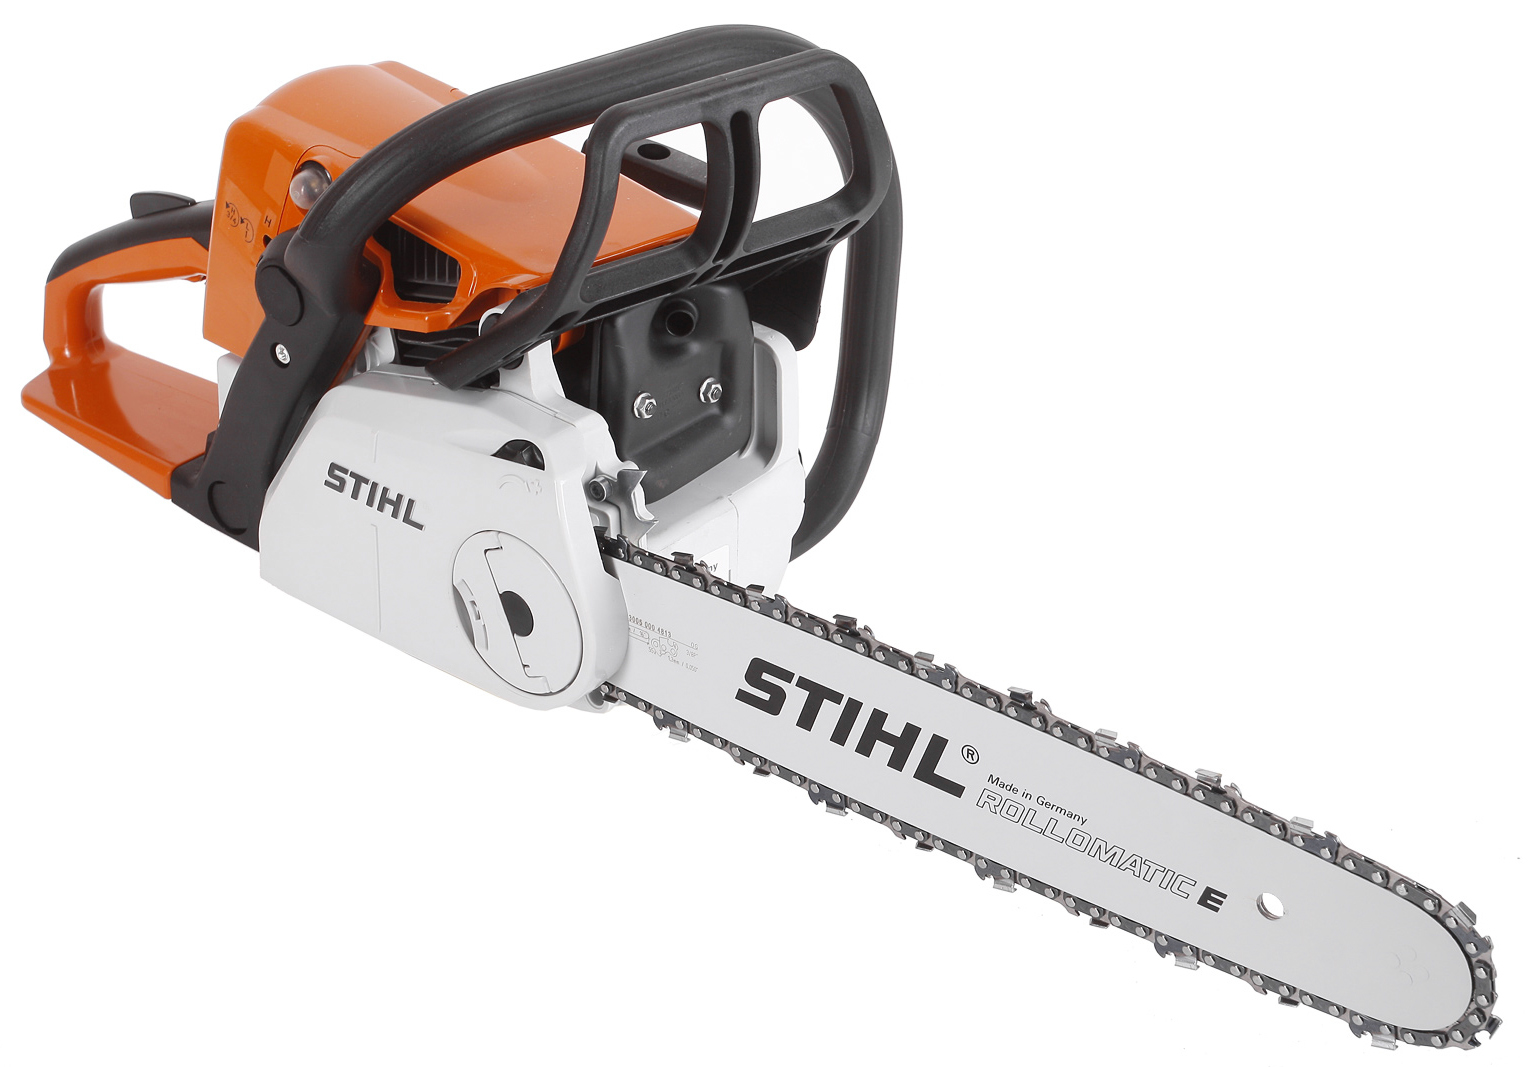 Бензопила Stihl Ms 230 c-be цены